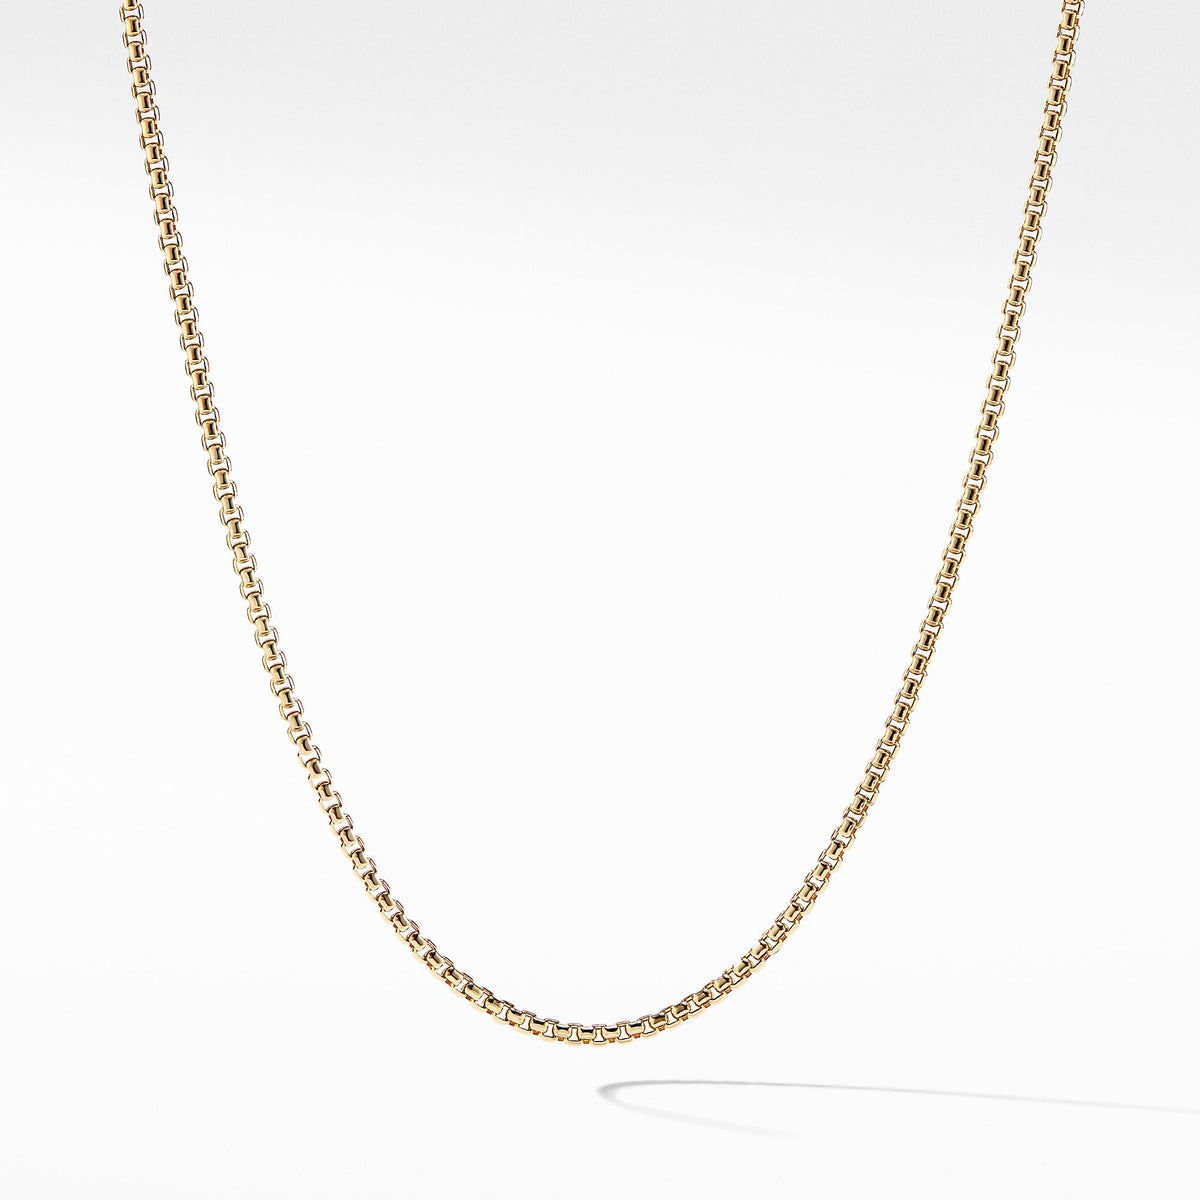 Small Box Chain in 18K Gold, 2.7mm